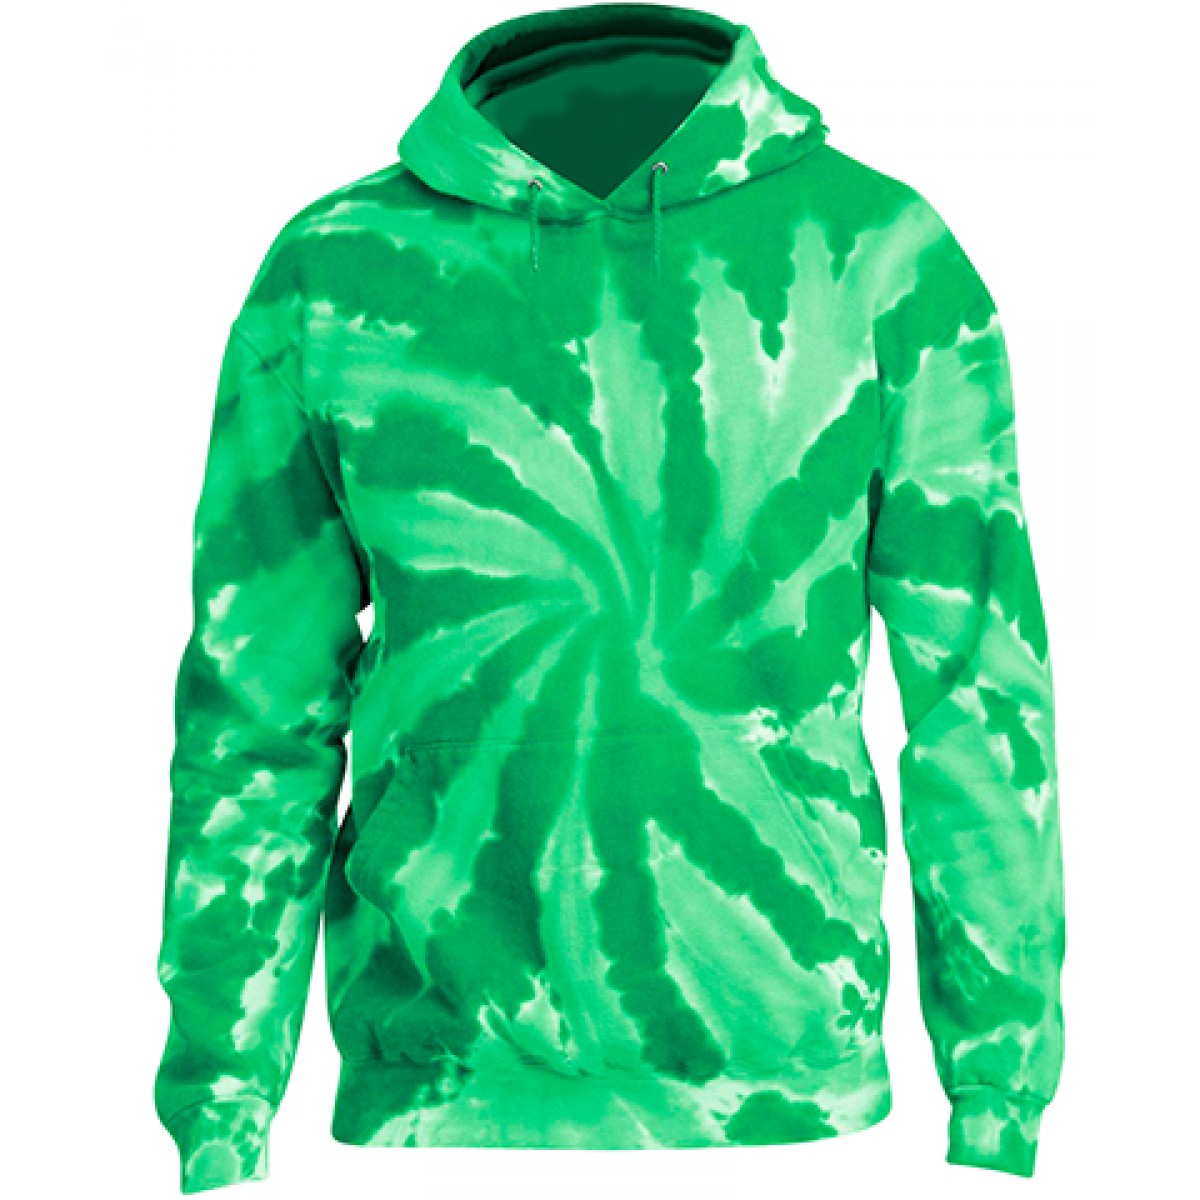 Tie-Dye Pullover Hooded Sweatshirt-Green-XL